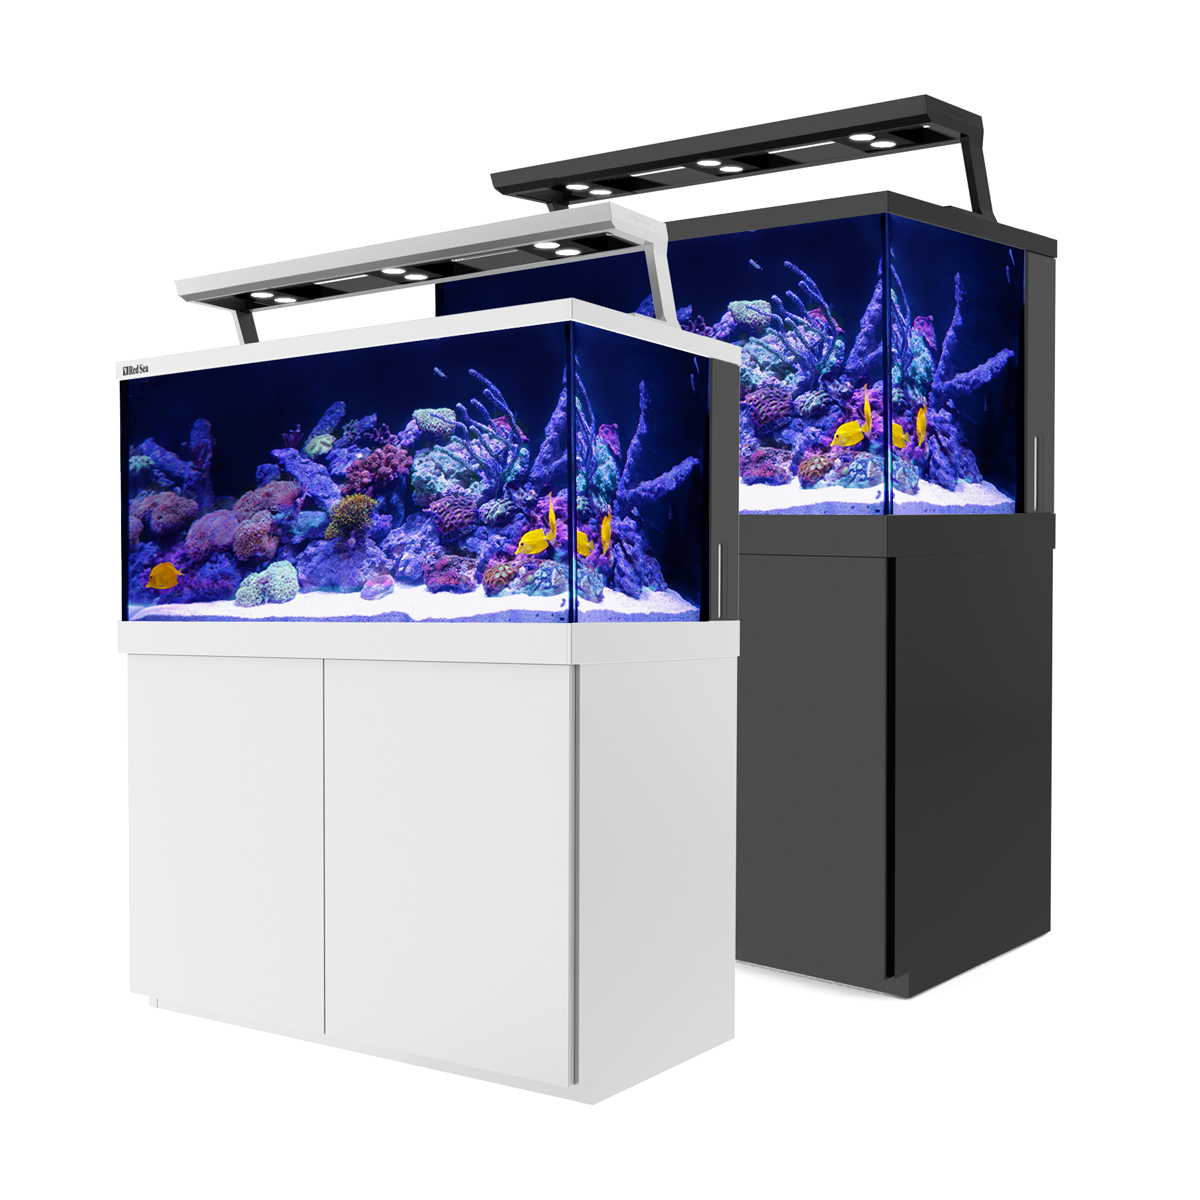 Max S 500 Led Complete Reef System 132 Gal Red Sea